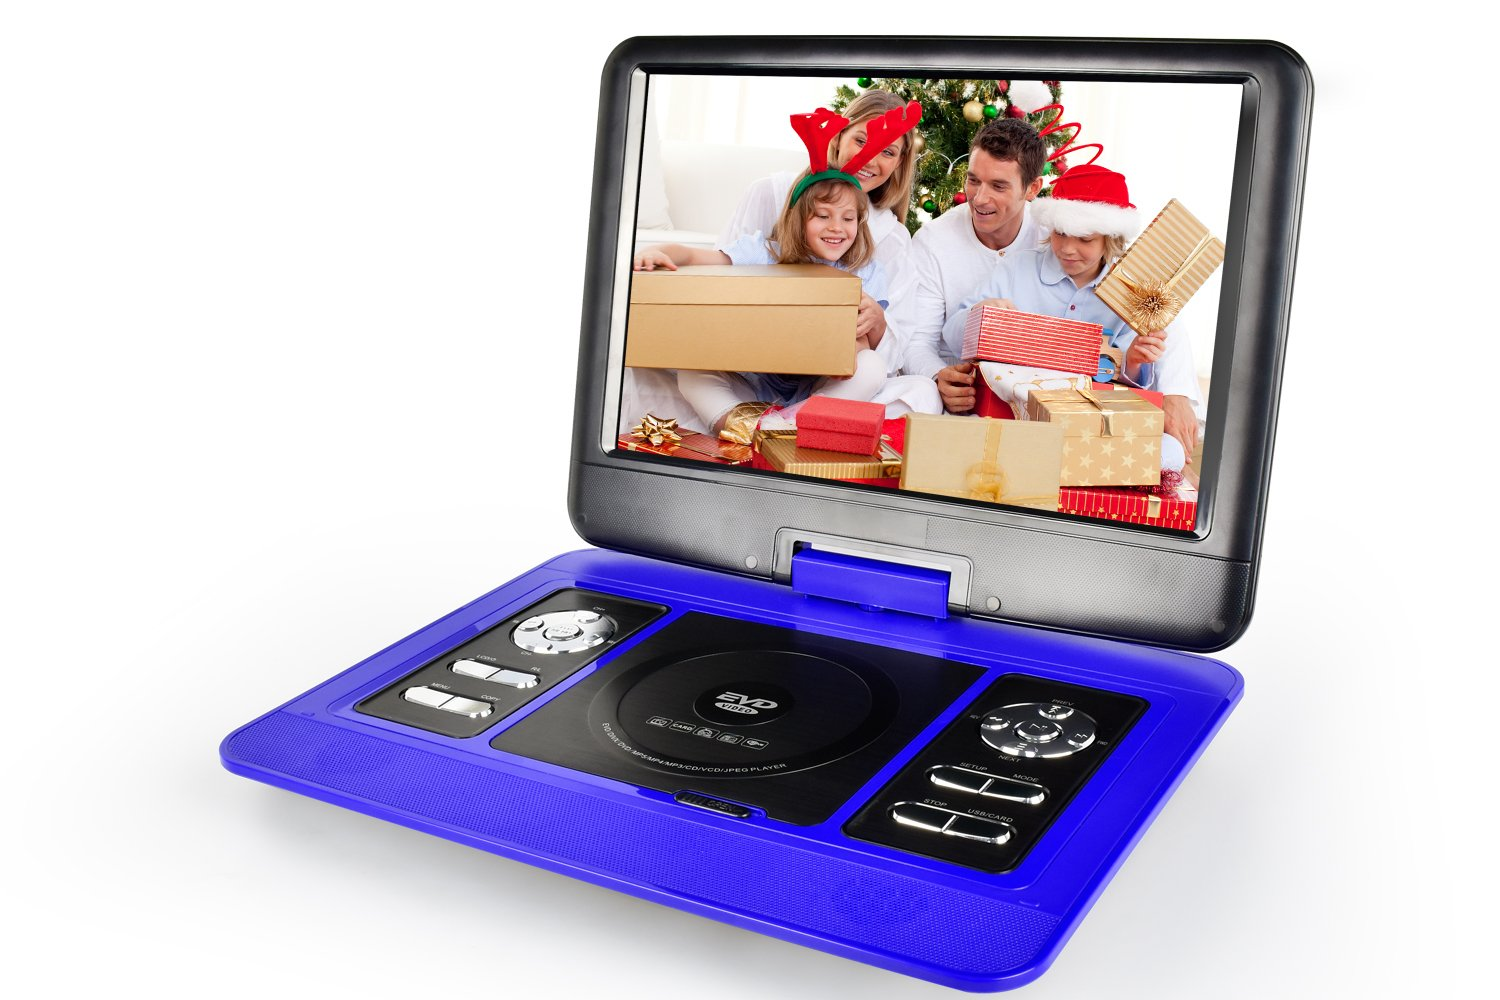 ZEROXCLUB 13.5-inch Portable DVD Player with Swivel Screen,Support USB/SD Card ,3 Hours Rechargeable Battery,Christmas Best Gift for Kids(Blue) by ZEROXCLUB